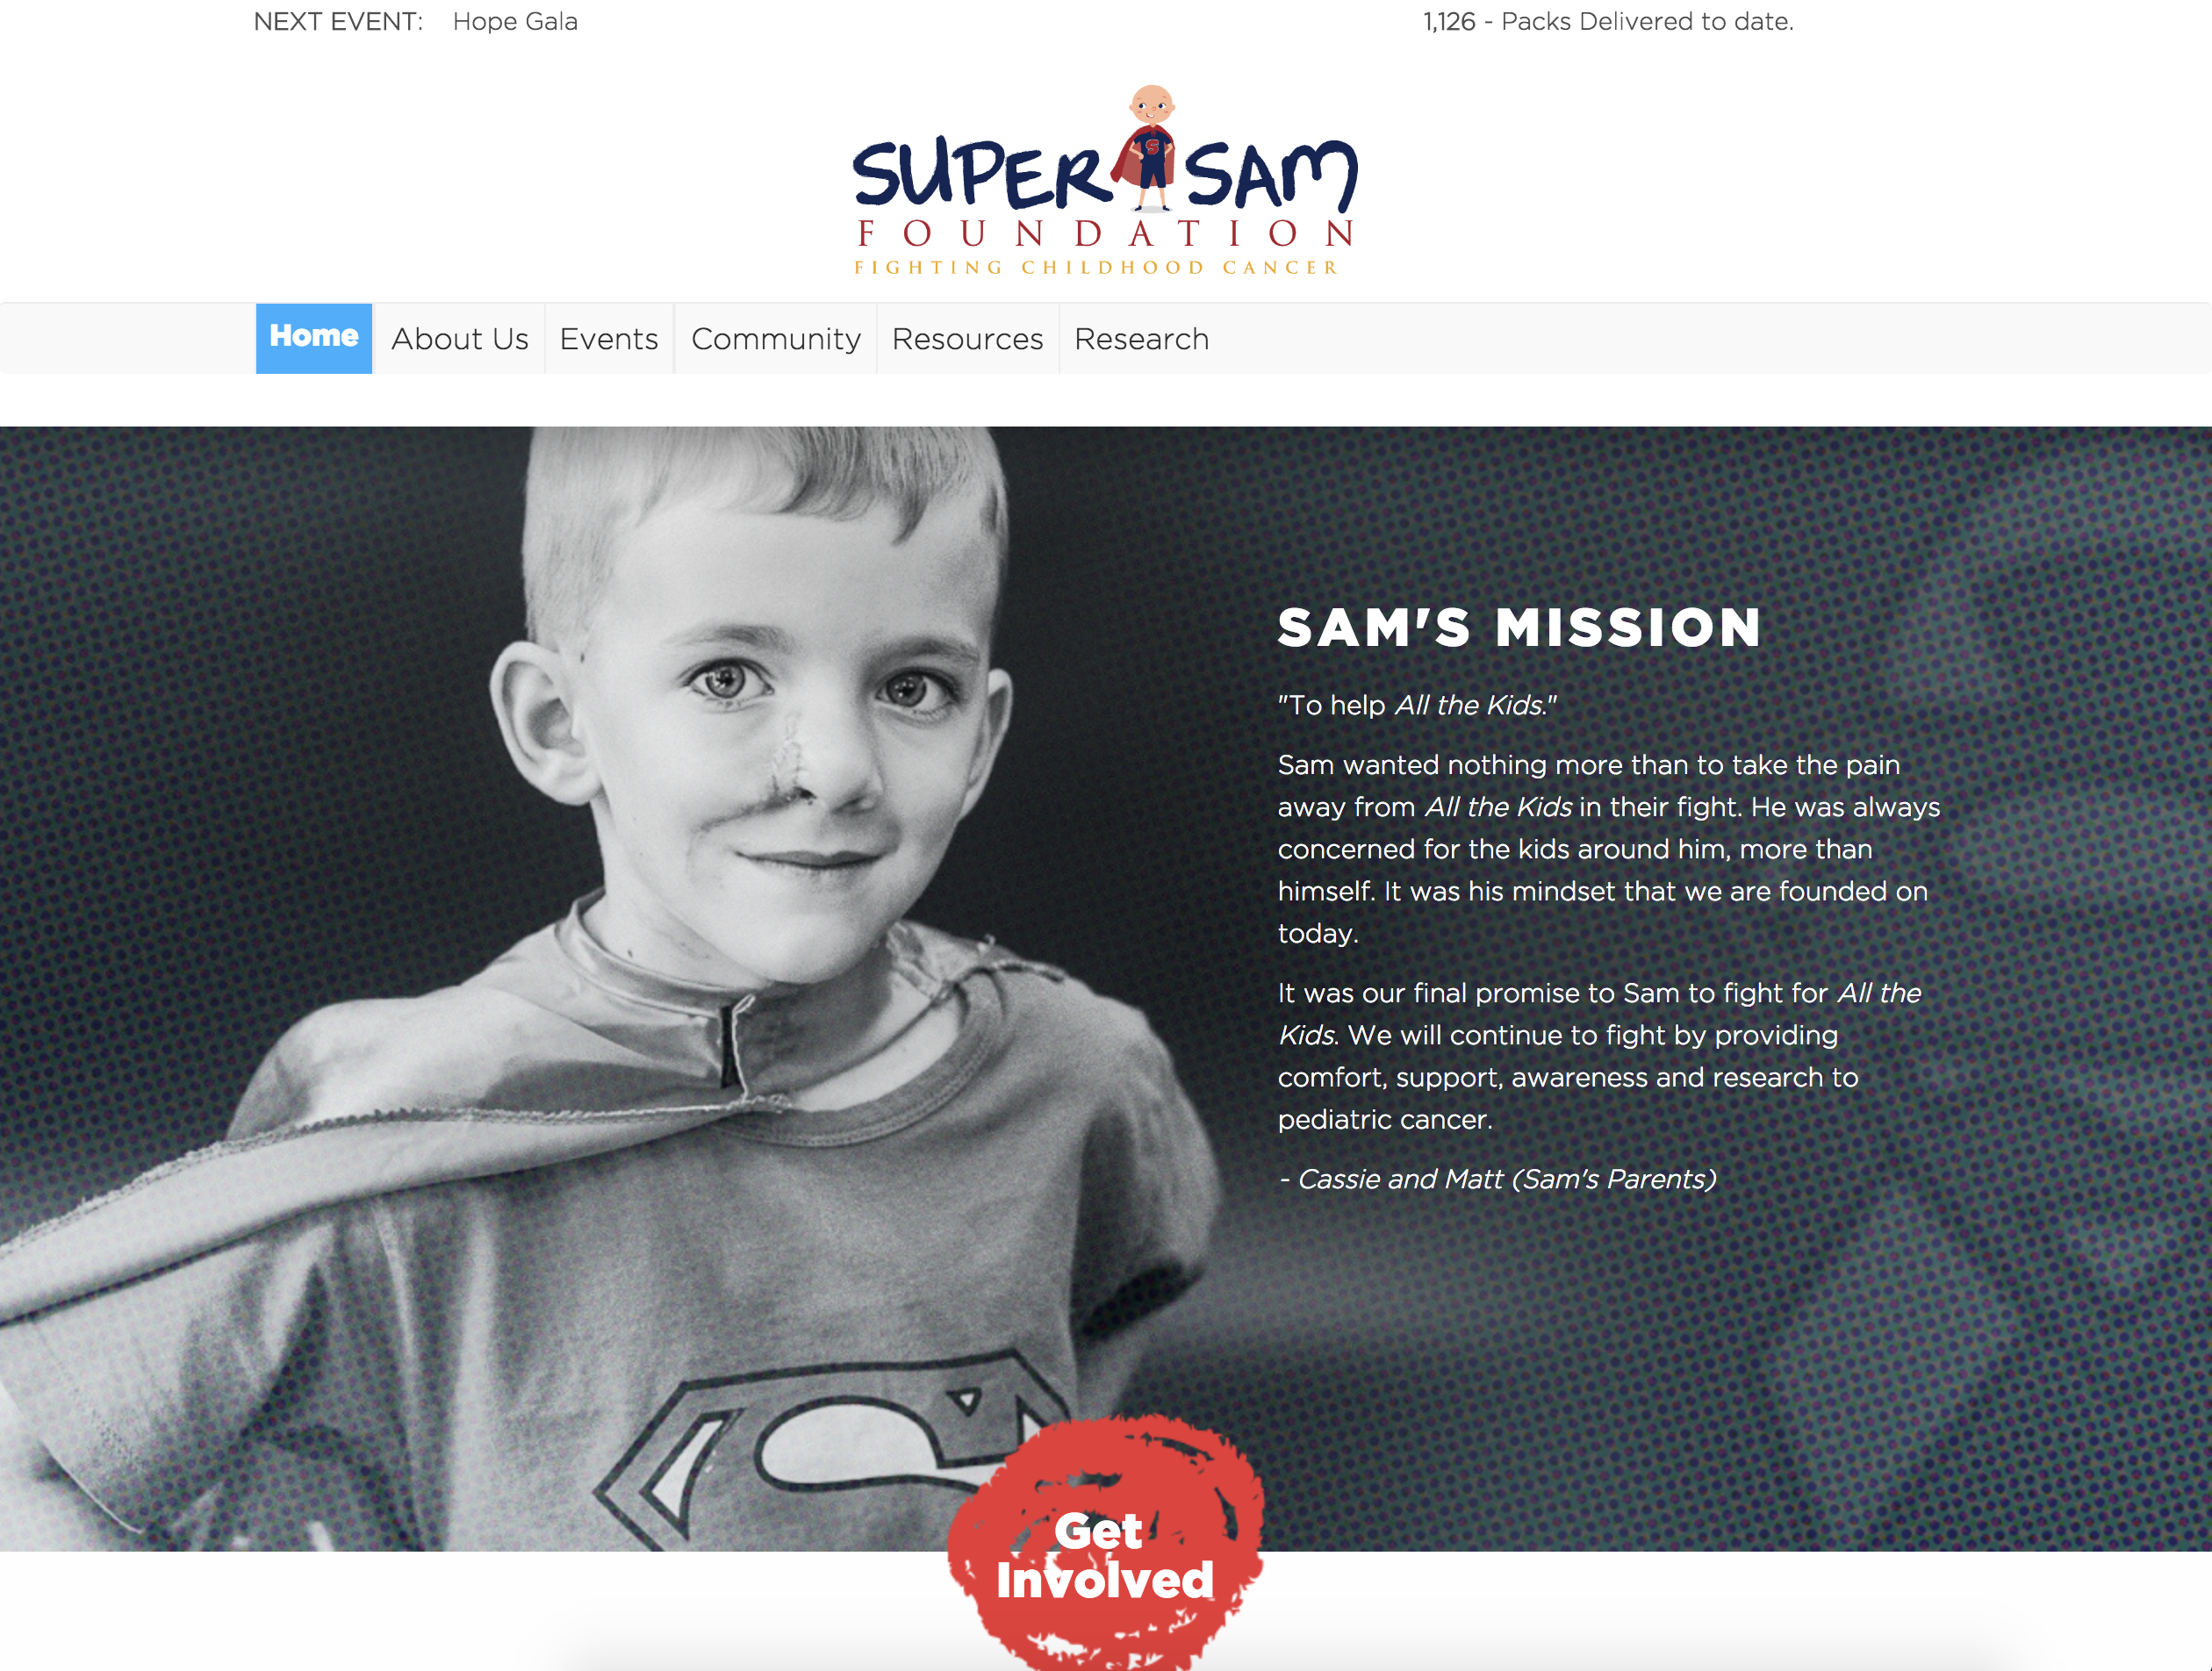 SuperSam Foundation